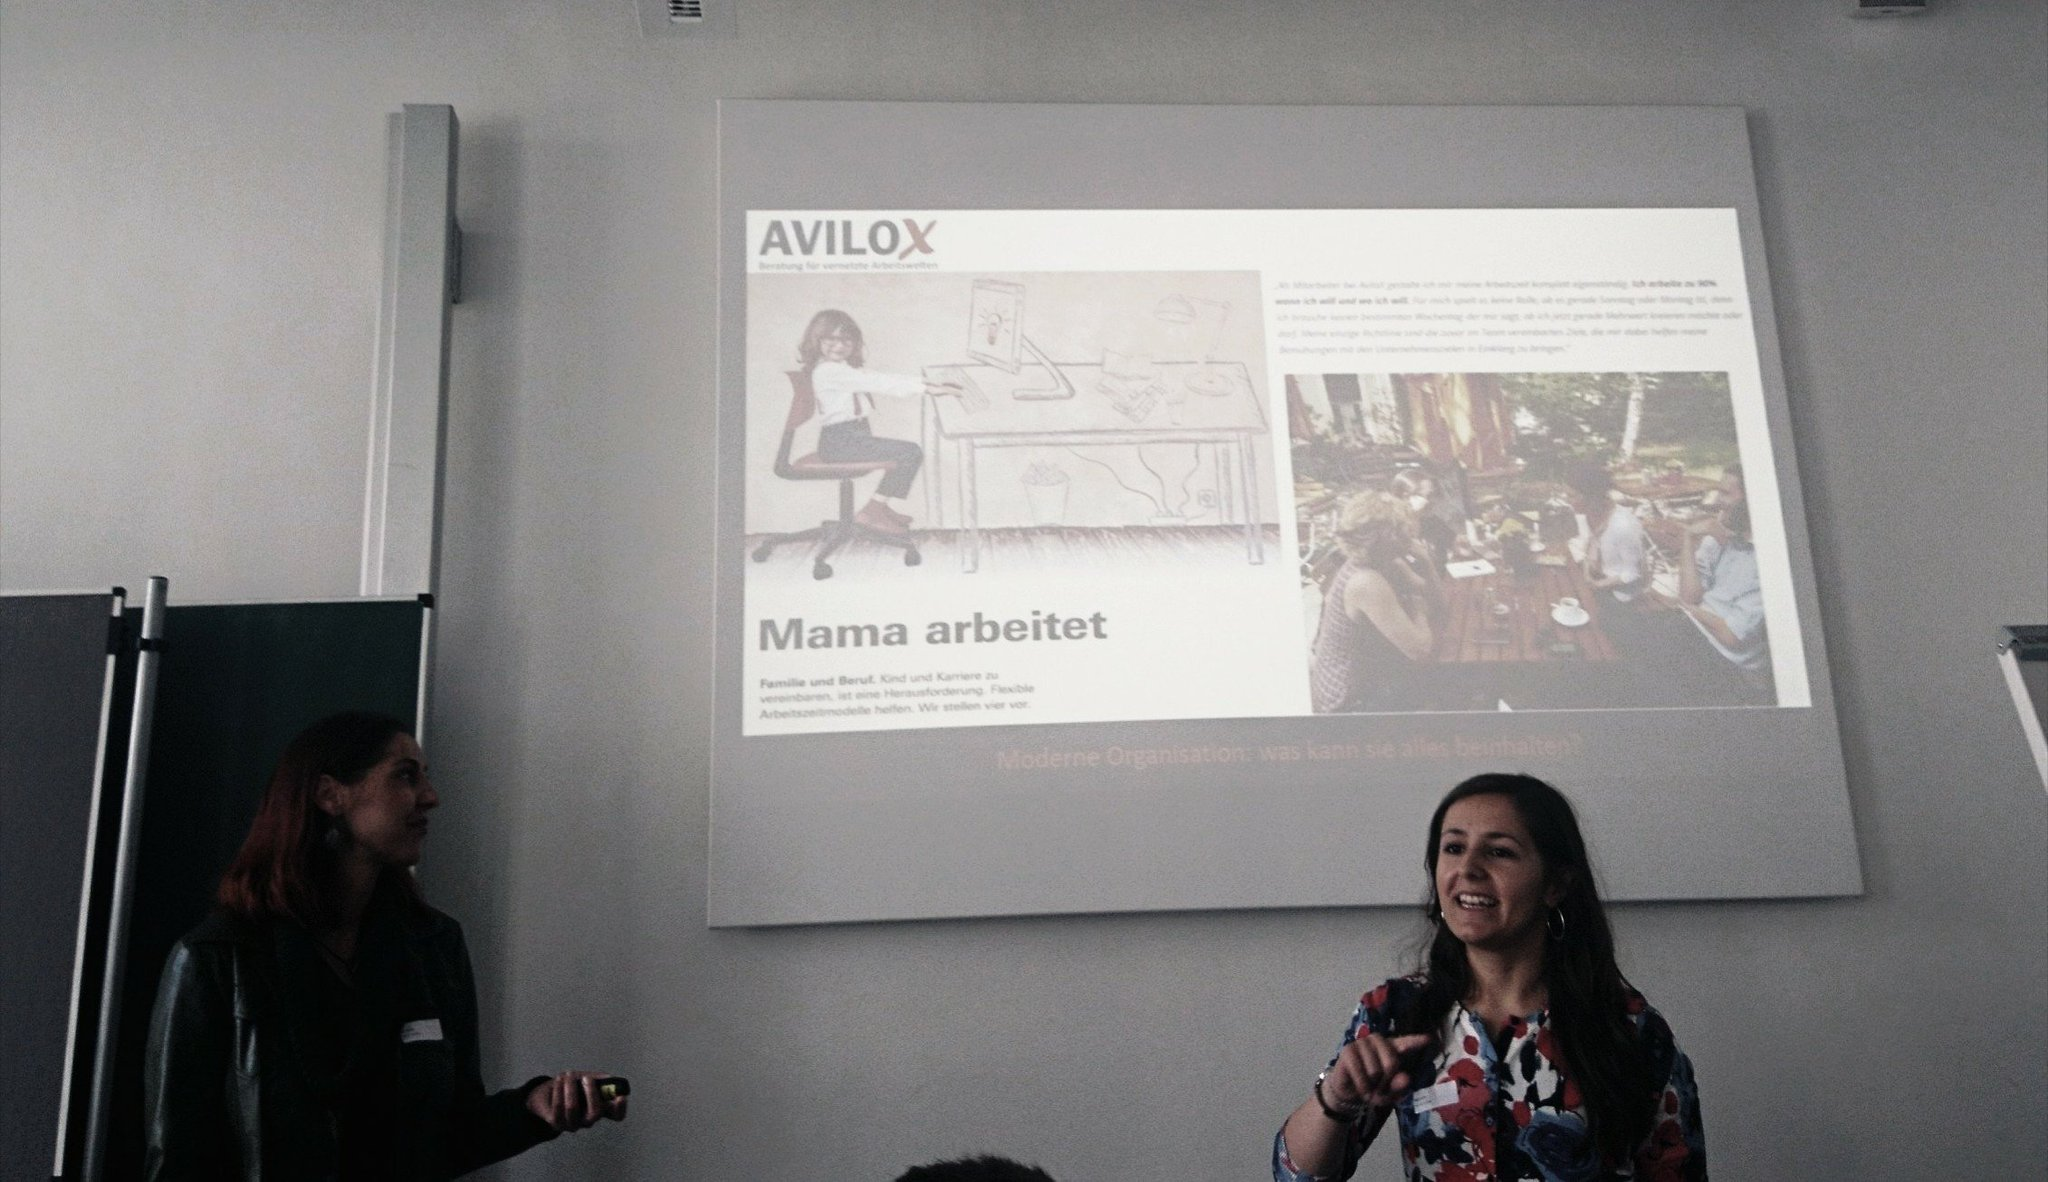 Organisationsmodelle neu gedacht, 4 flexible Arbeitsformen by @myavilox #HRInnoDay https://t.co/M3EWRgKlUa